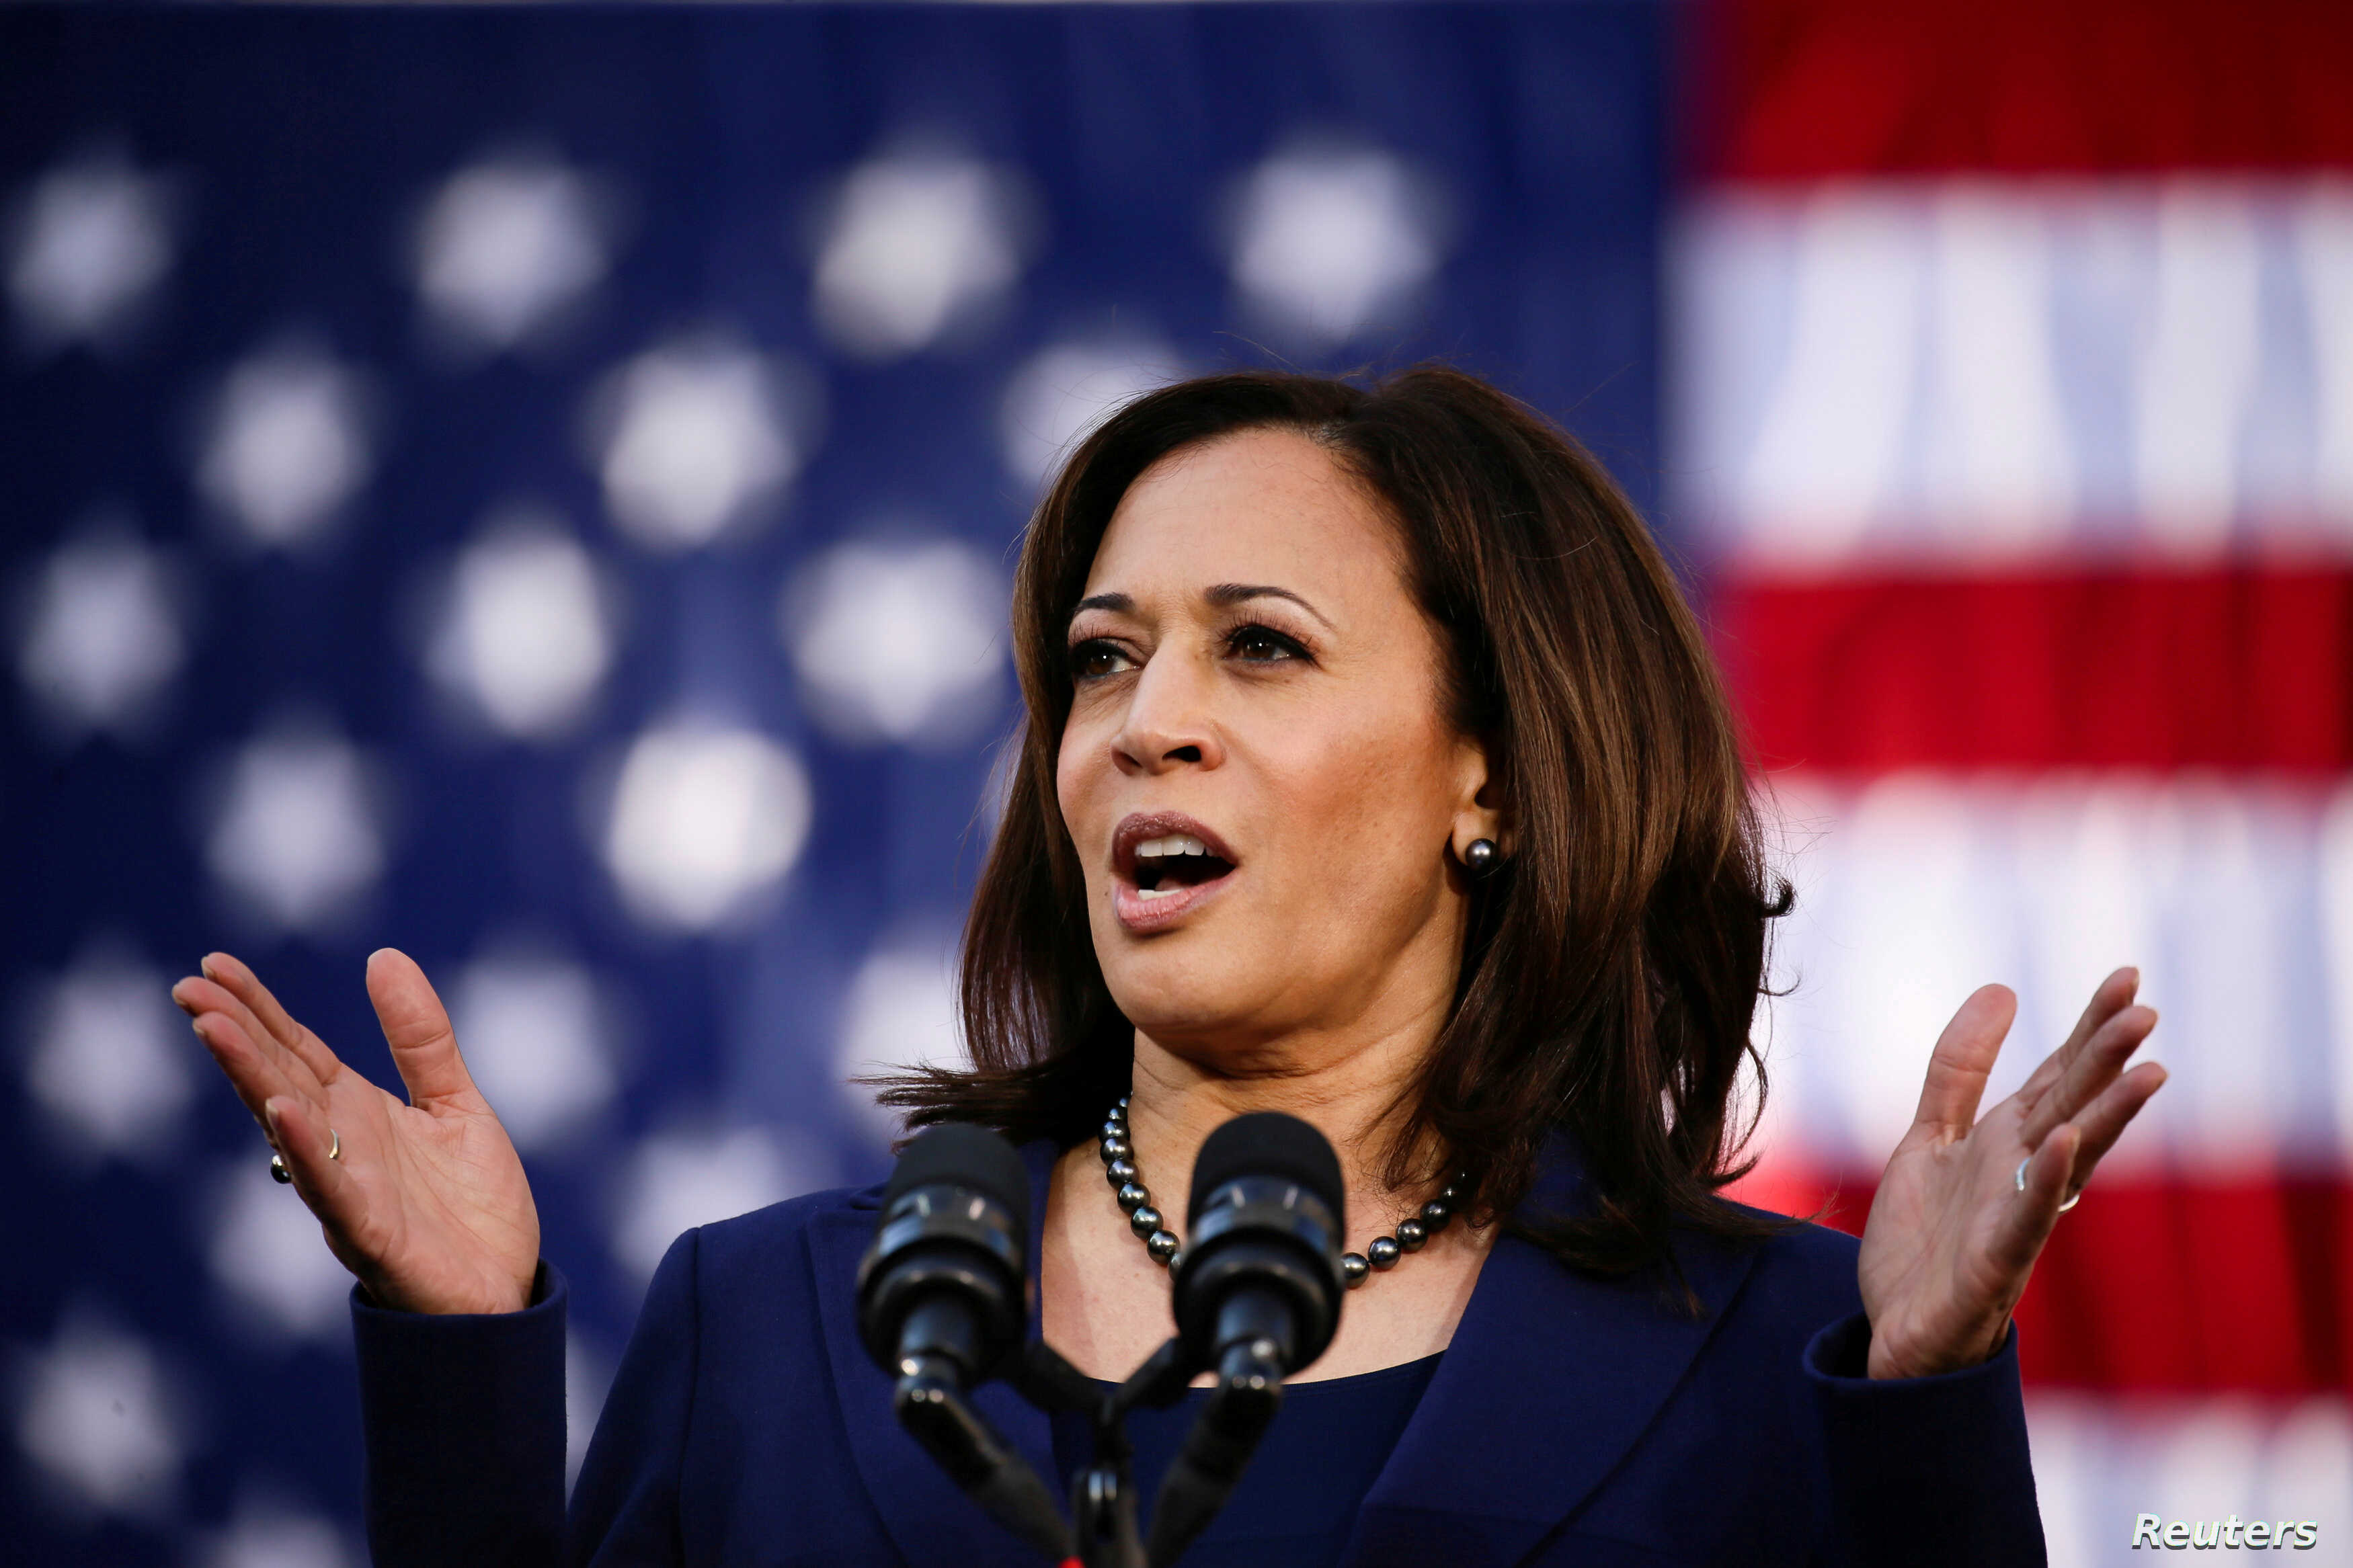 Harris Under Scrutiny For Tough On Crime Prosecutor Past Voice Of America English